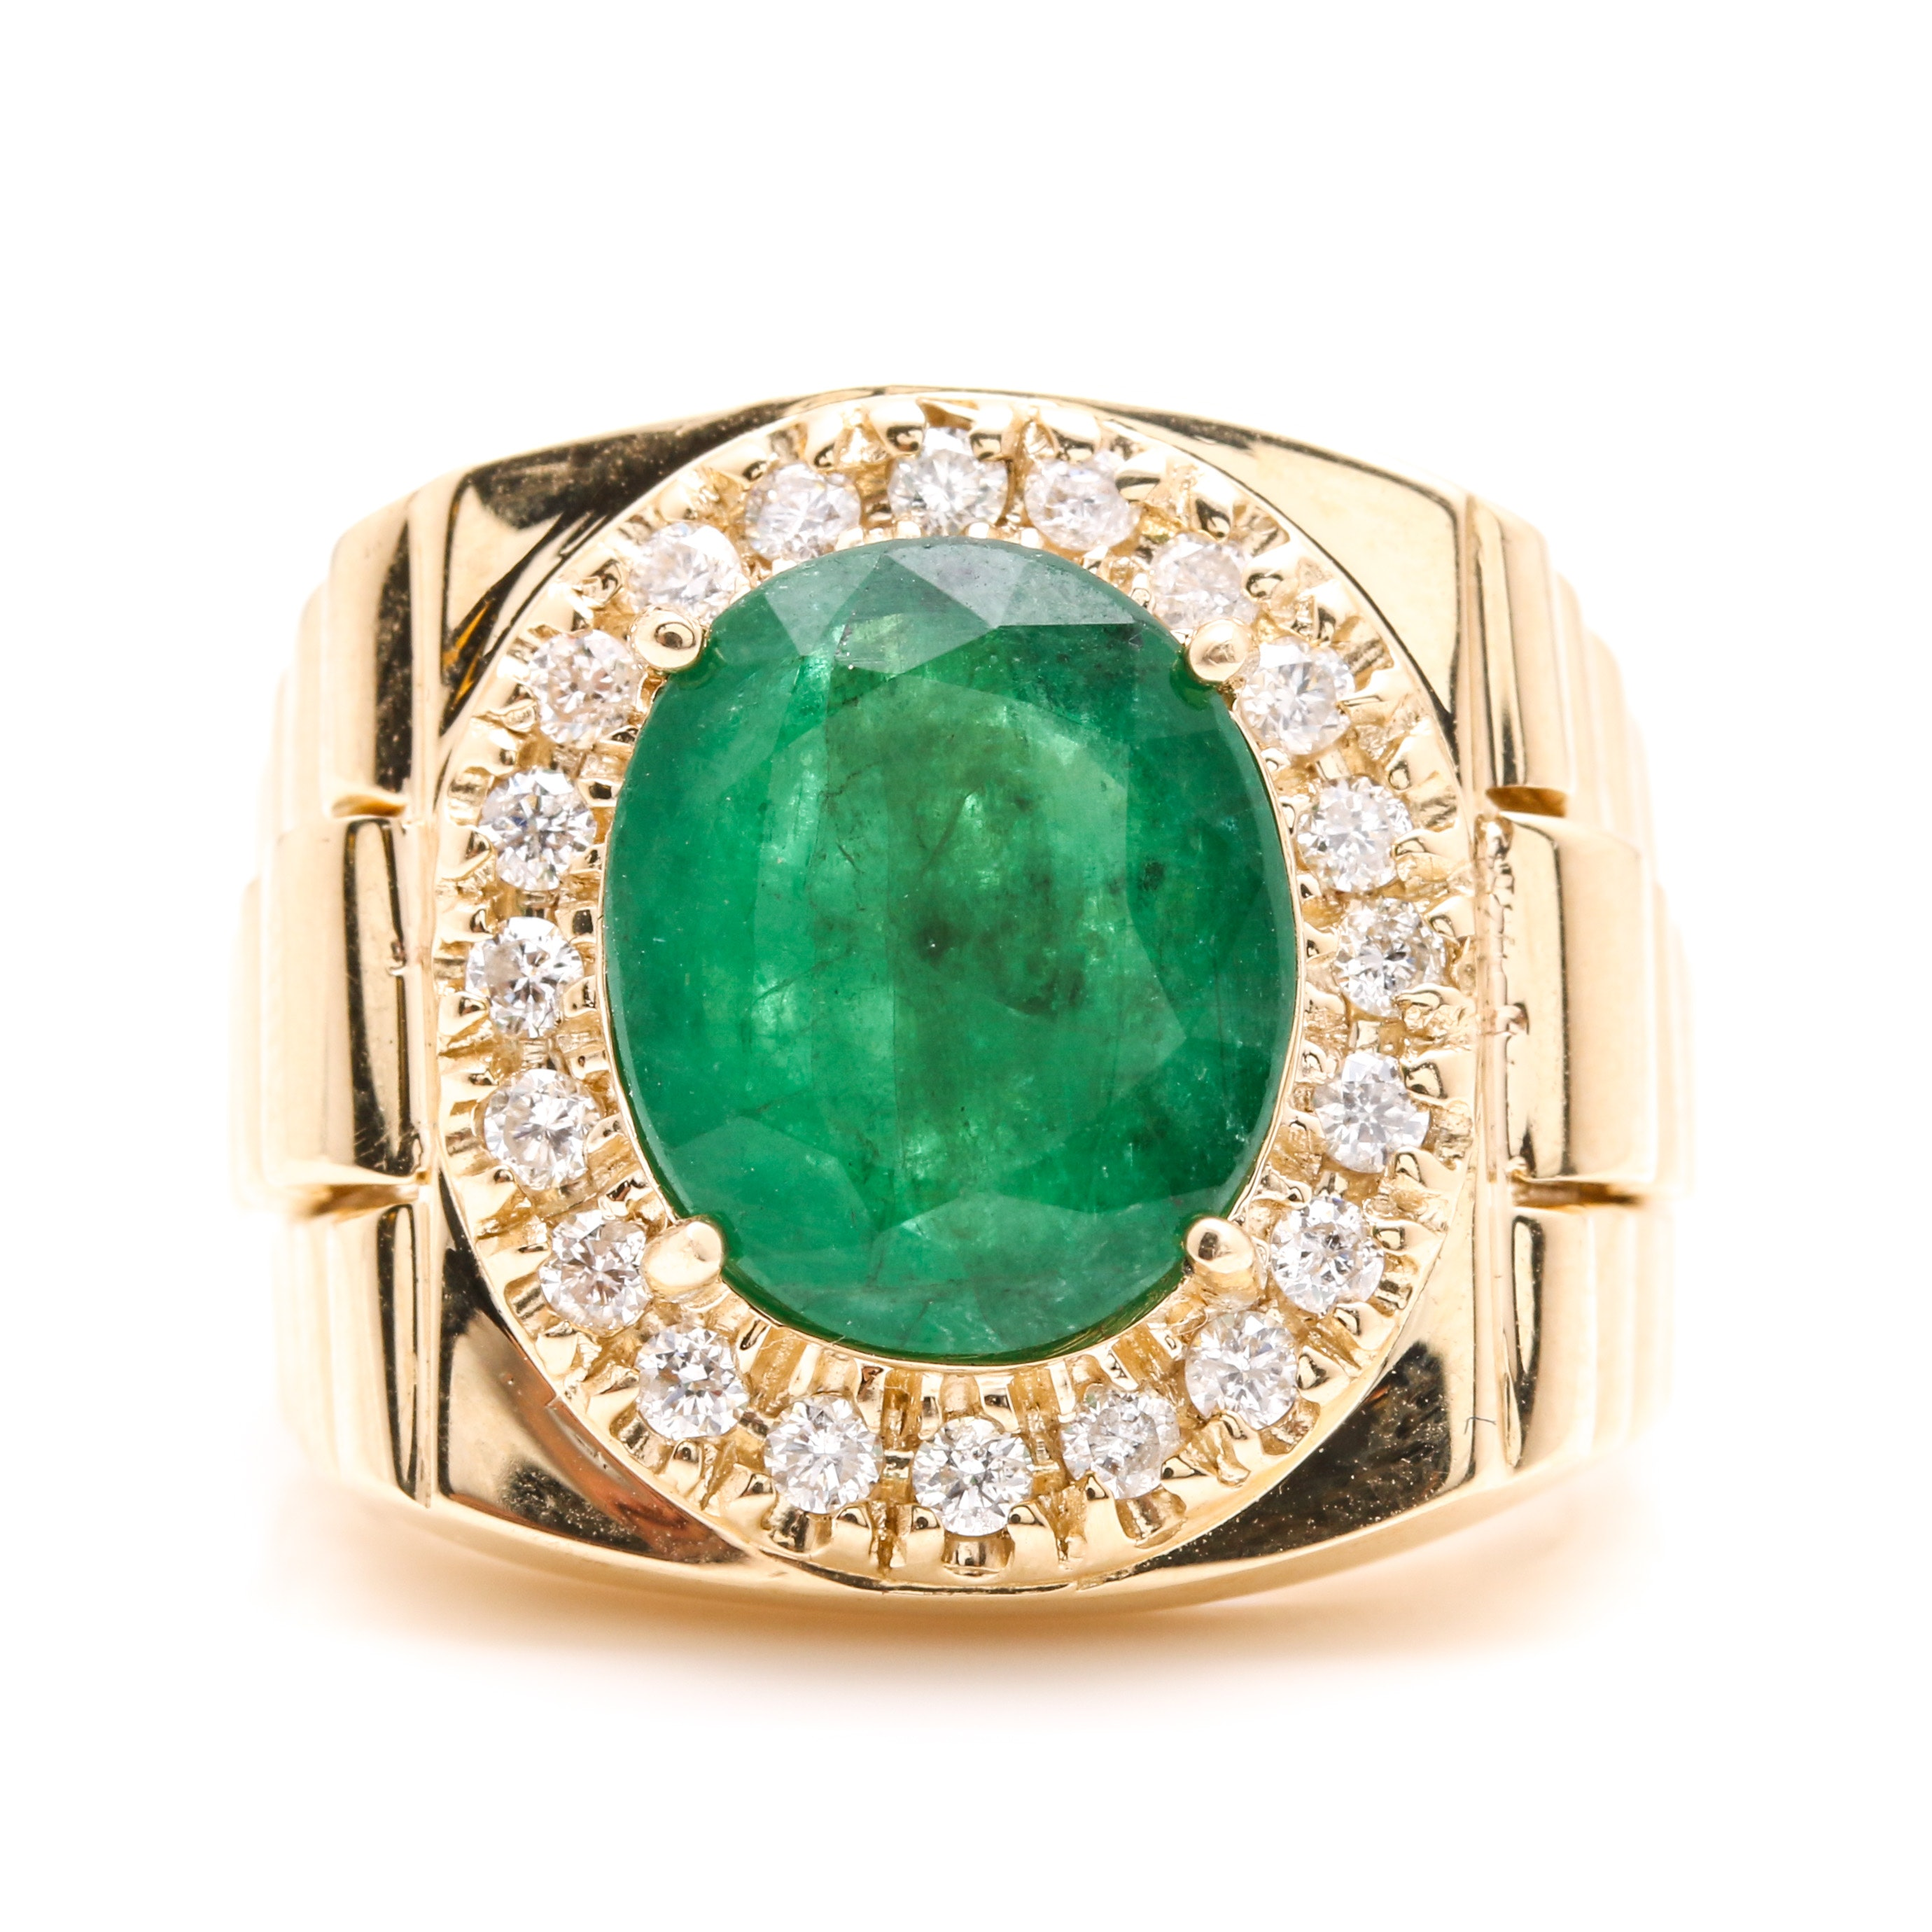 14K Yellow Gold 3.75 CT Emerald and Diamond Ring